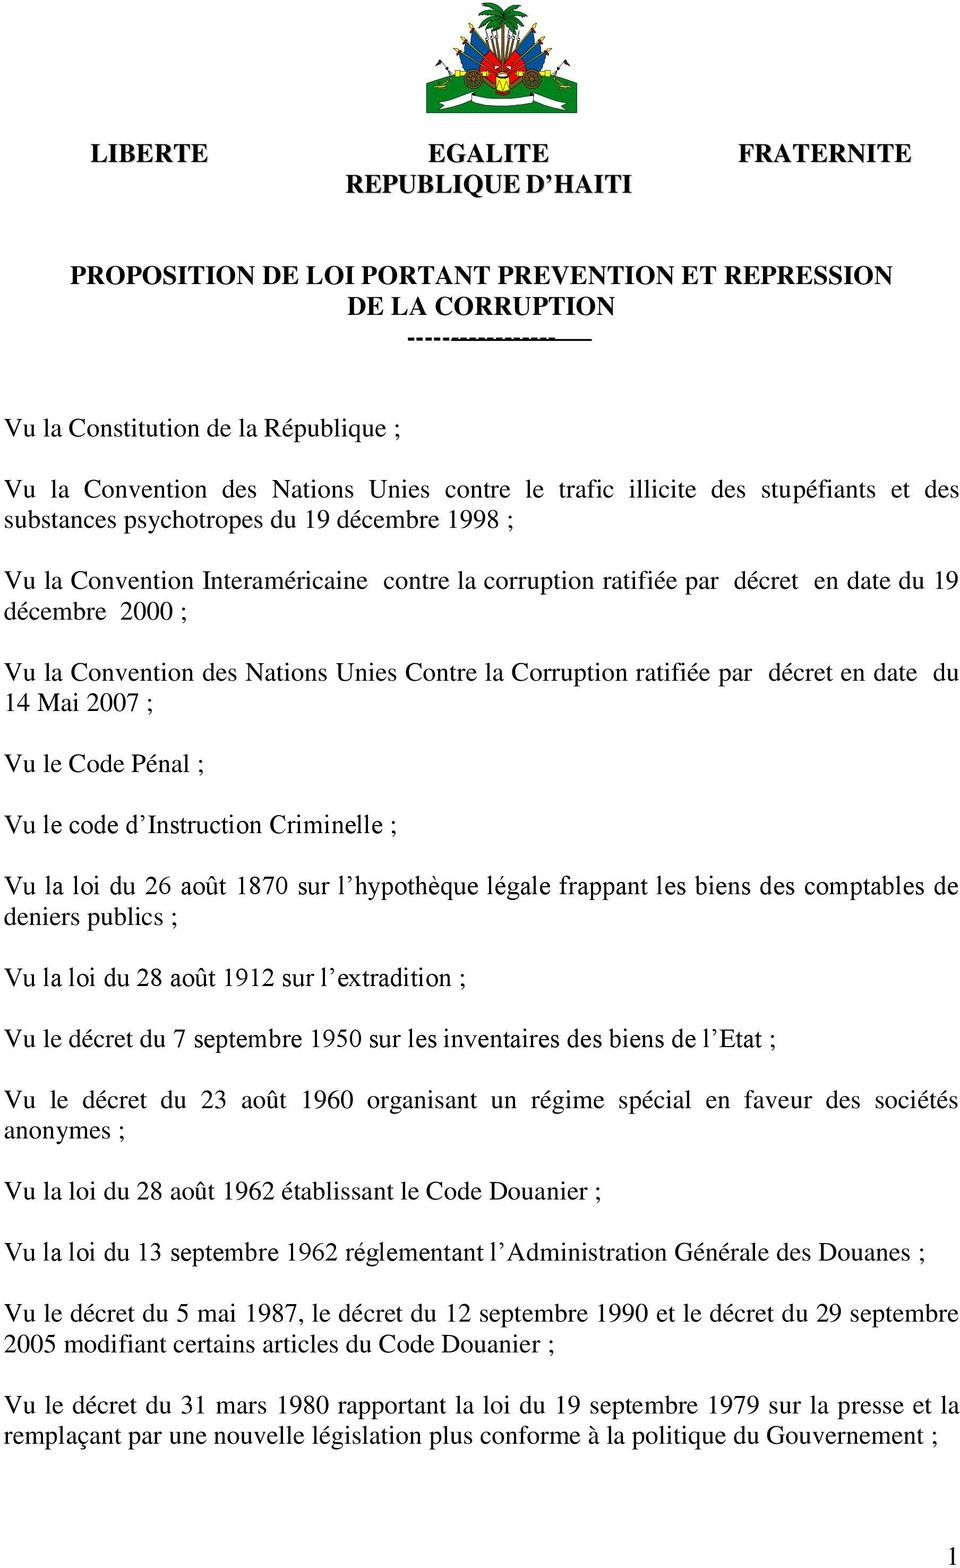 2000 ; Vu la Convention des Nations Unies Contre la Corruption ratifiée par décret en date du 14 Mai 2007 ; Vu le Code Pénal ; Vu le code d Instruction Criminelle ; Vu la loi du 26 août 1870 sur l